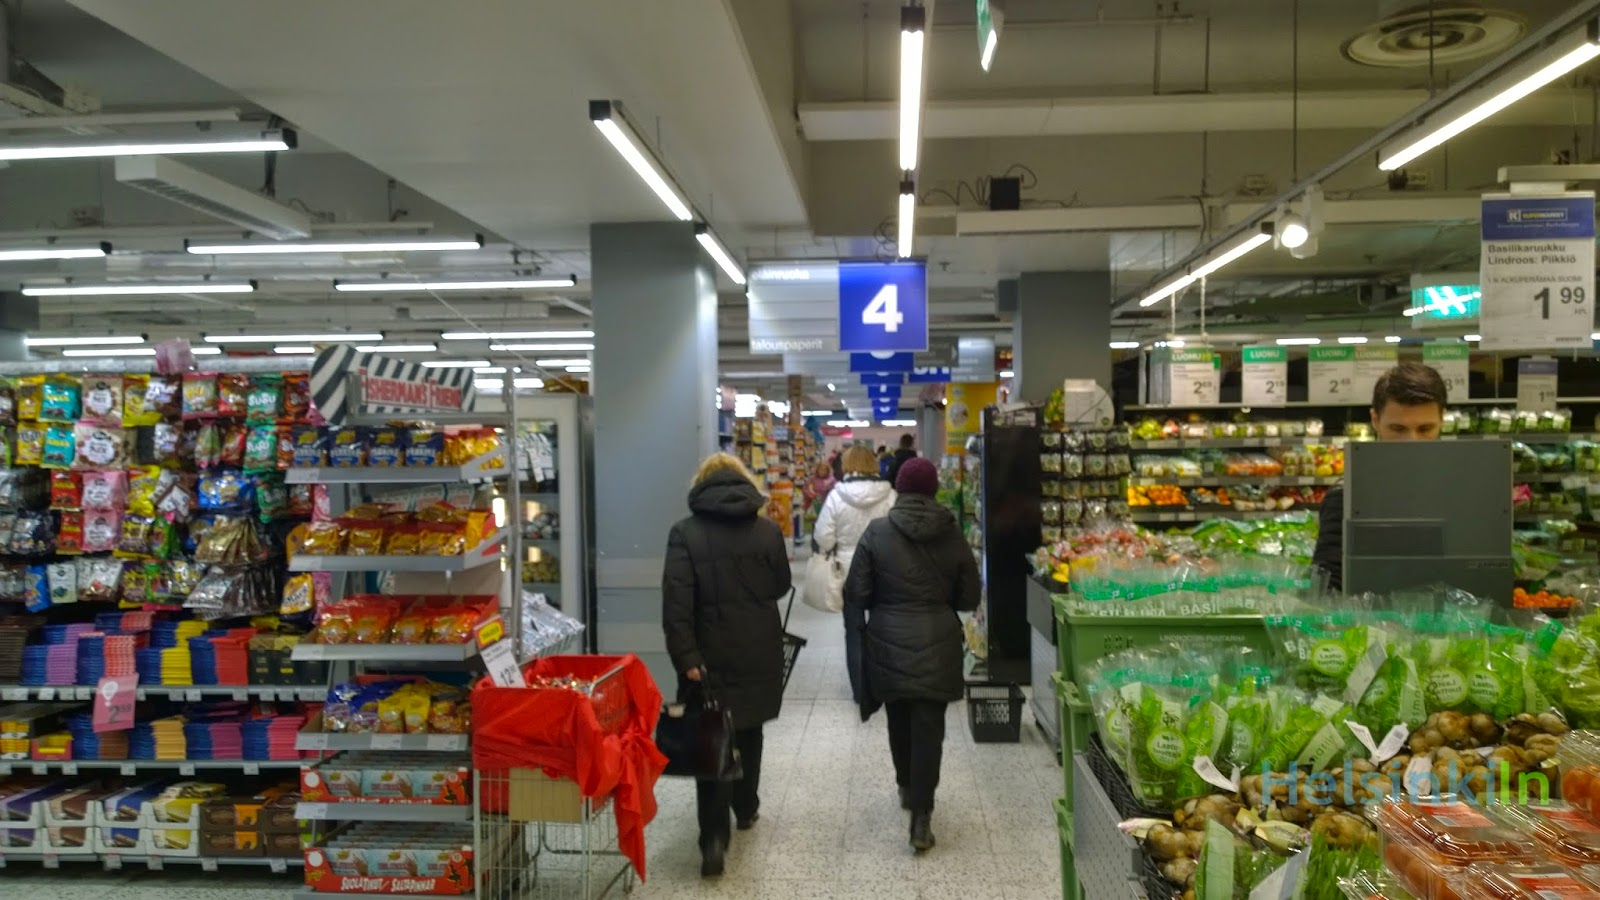 prices in Finnish supermarkets are going down